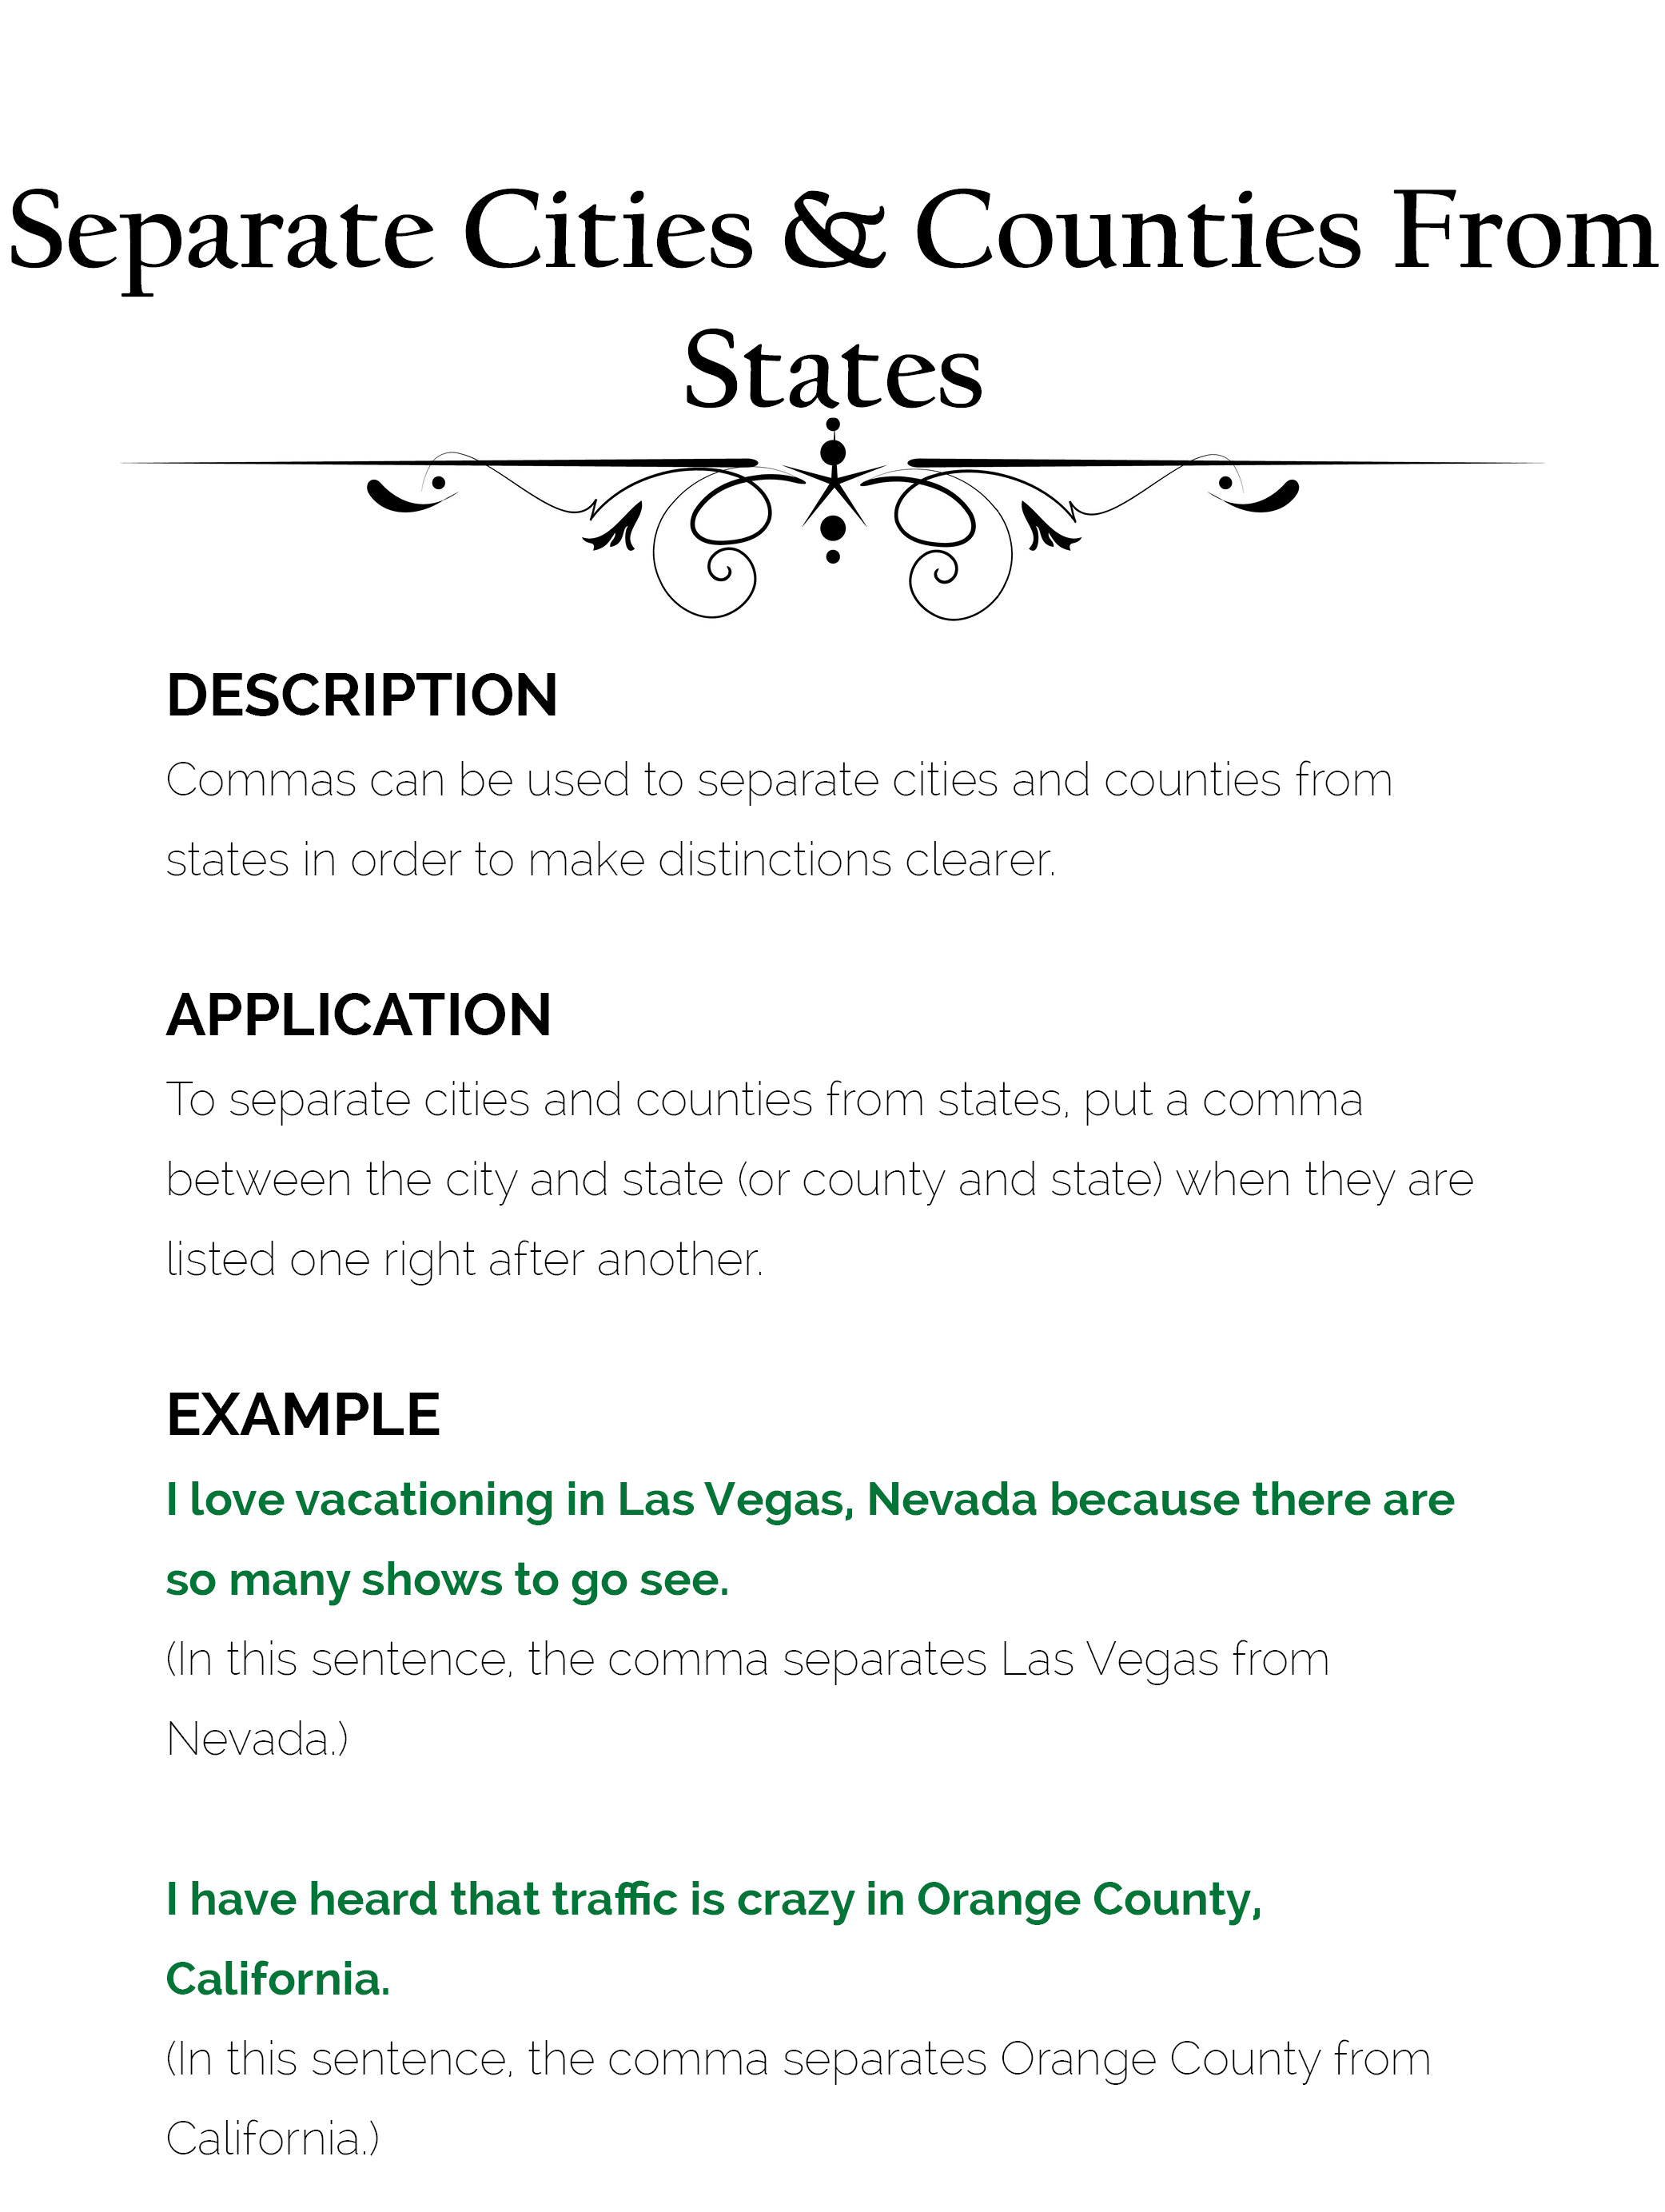 comma use 12 separates cities and countries from